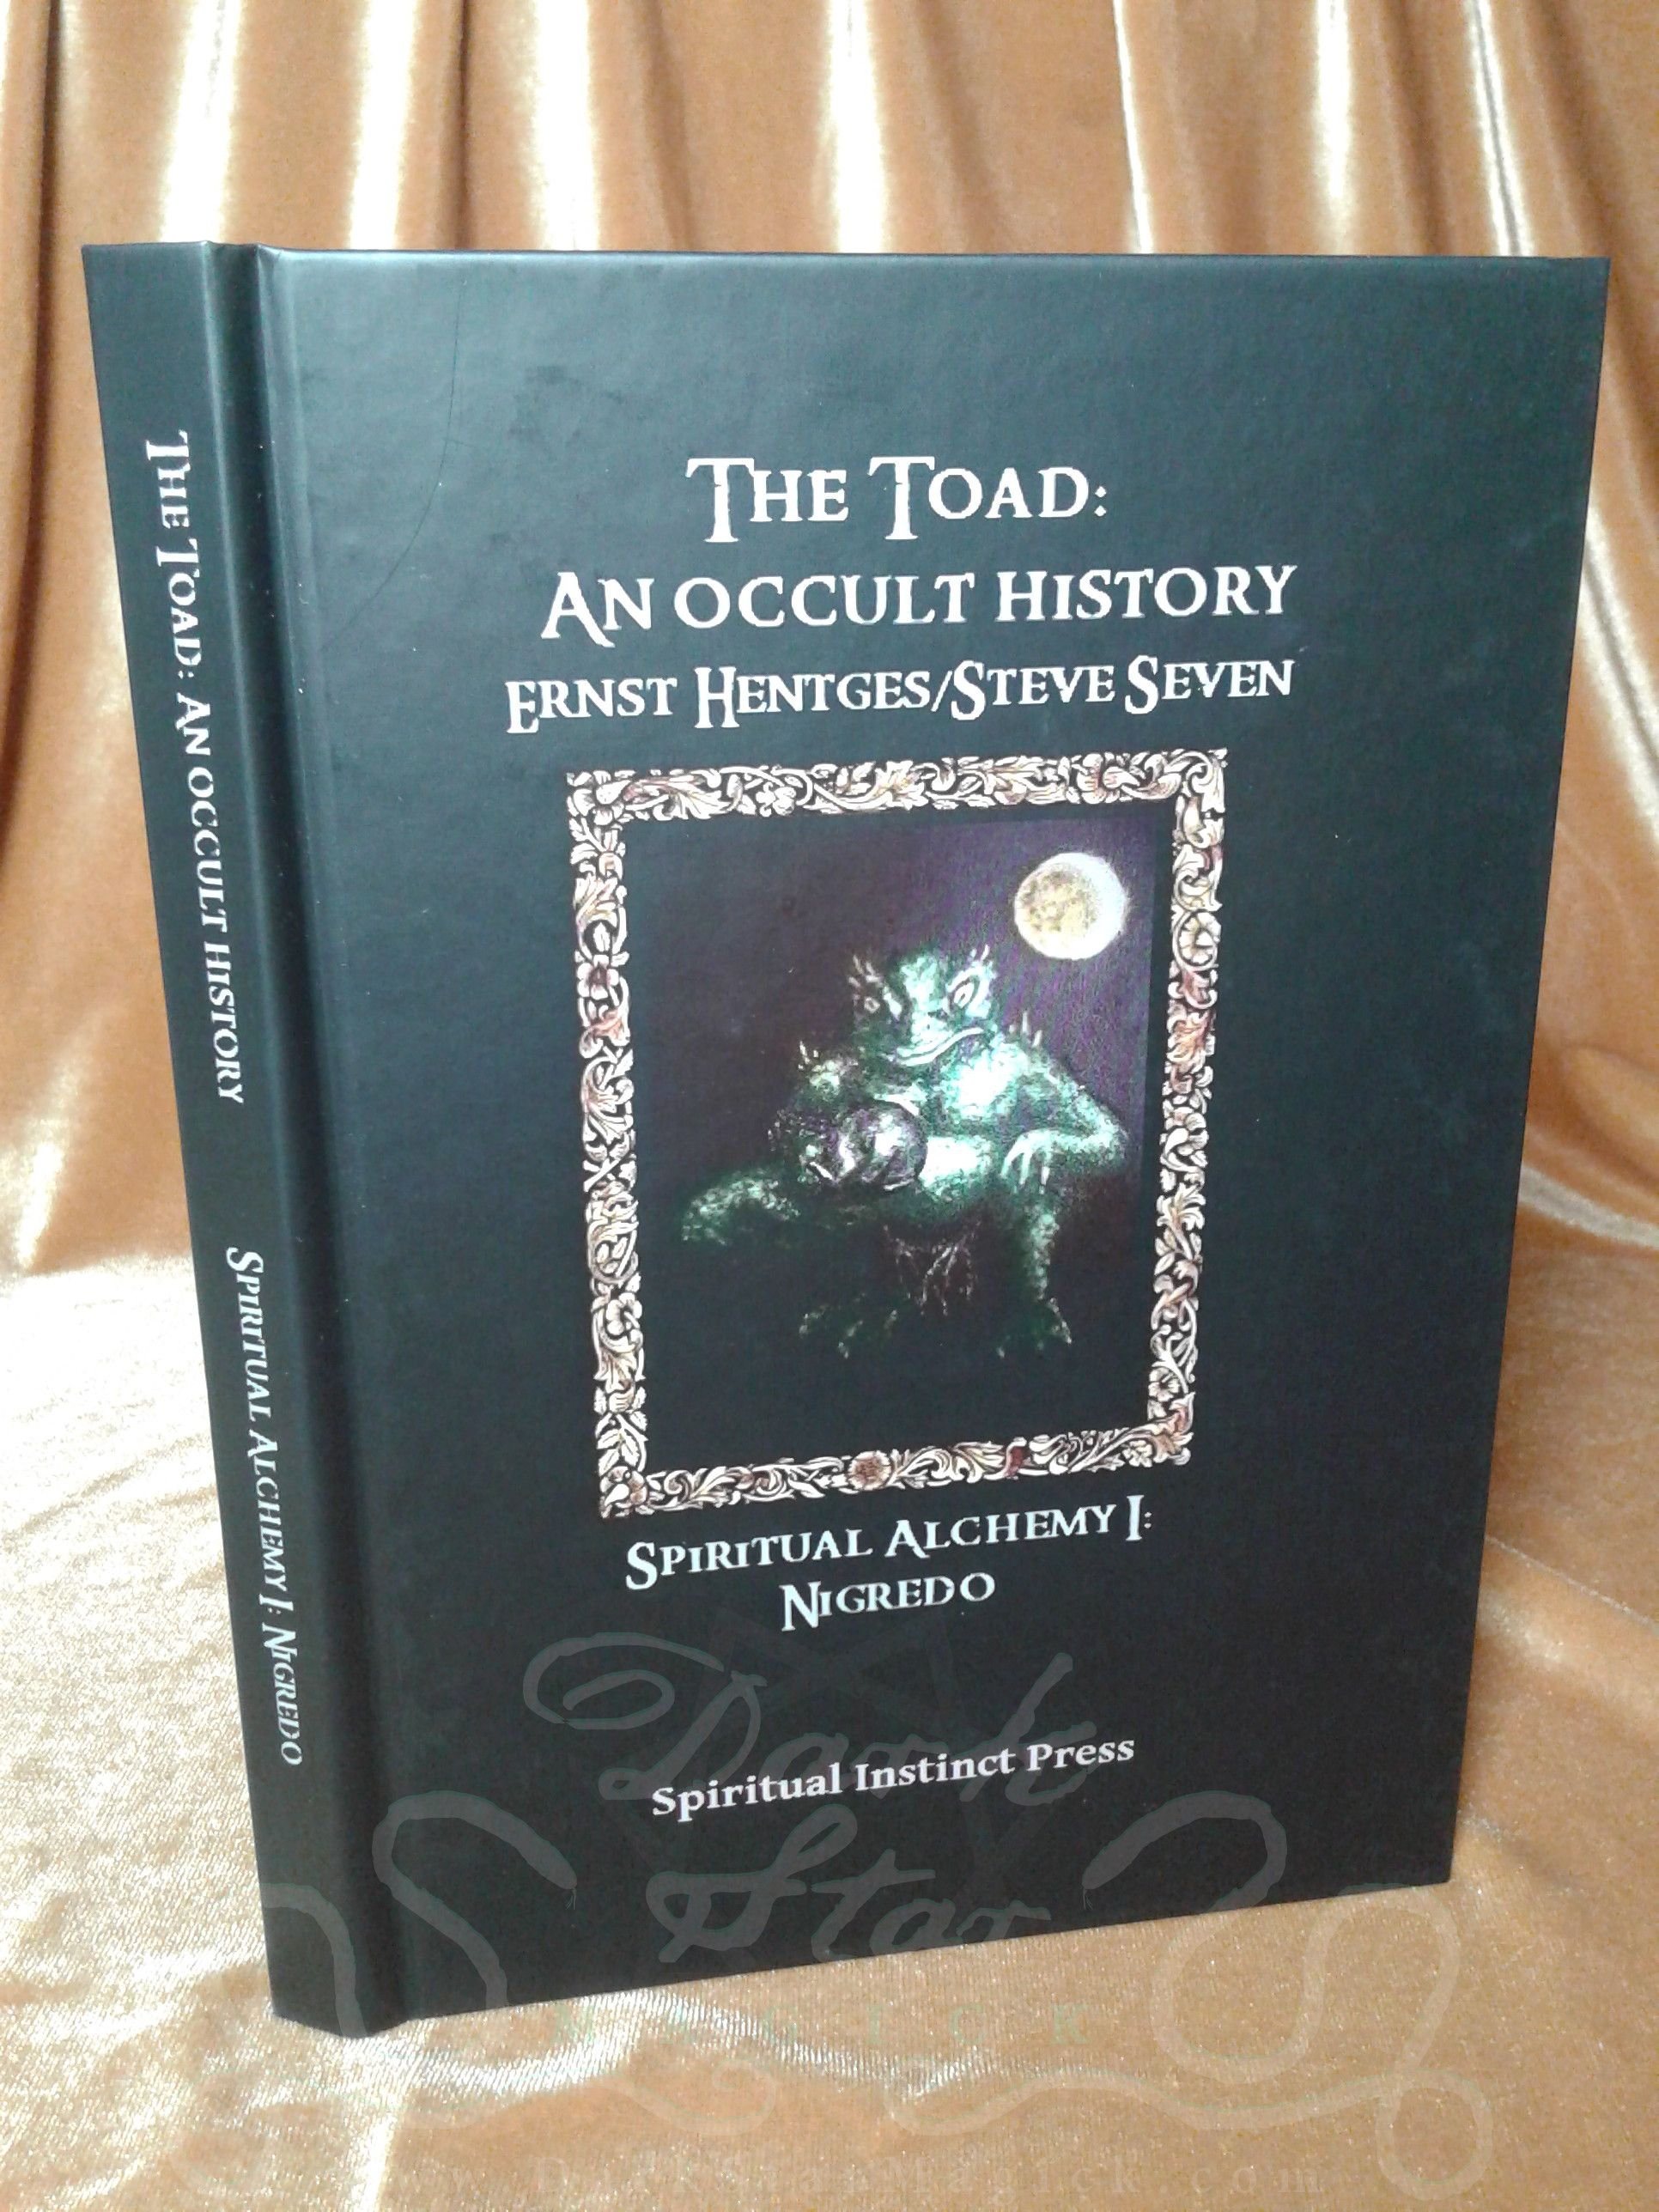 The Toad: An Occult History Spiritual Alchemy Vol  I